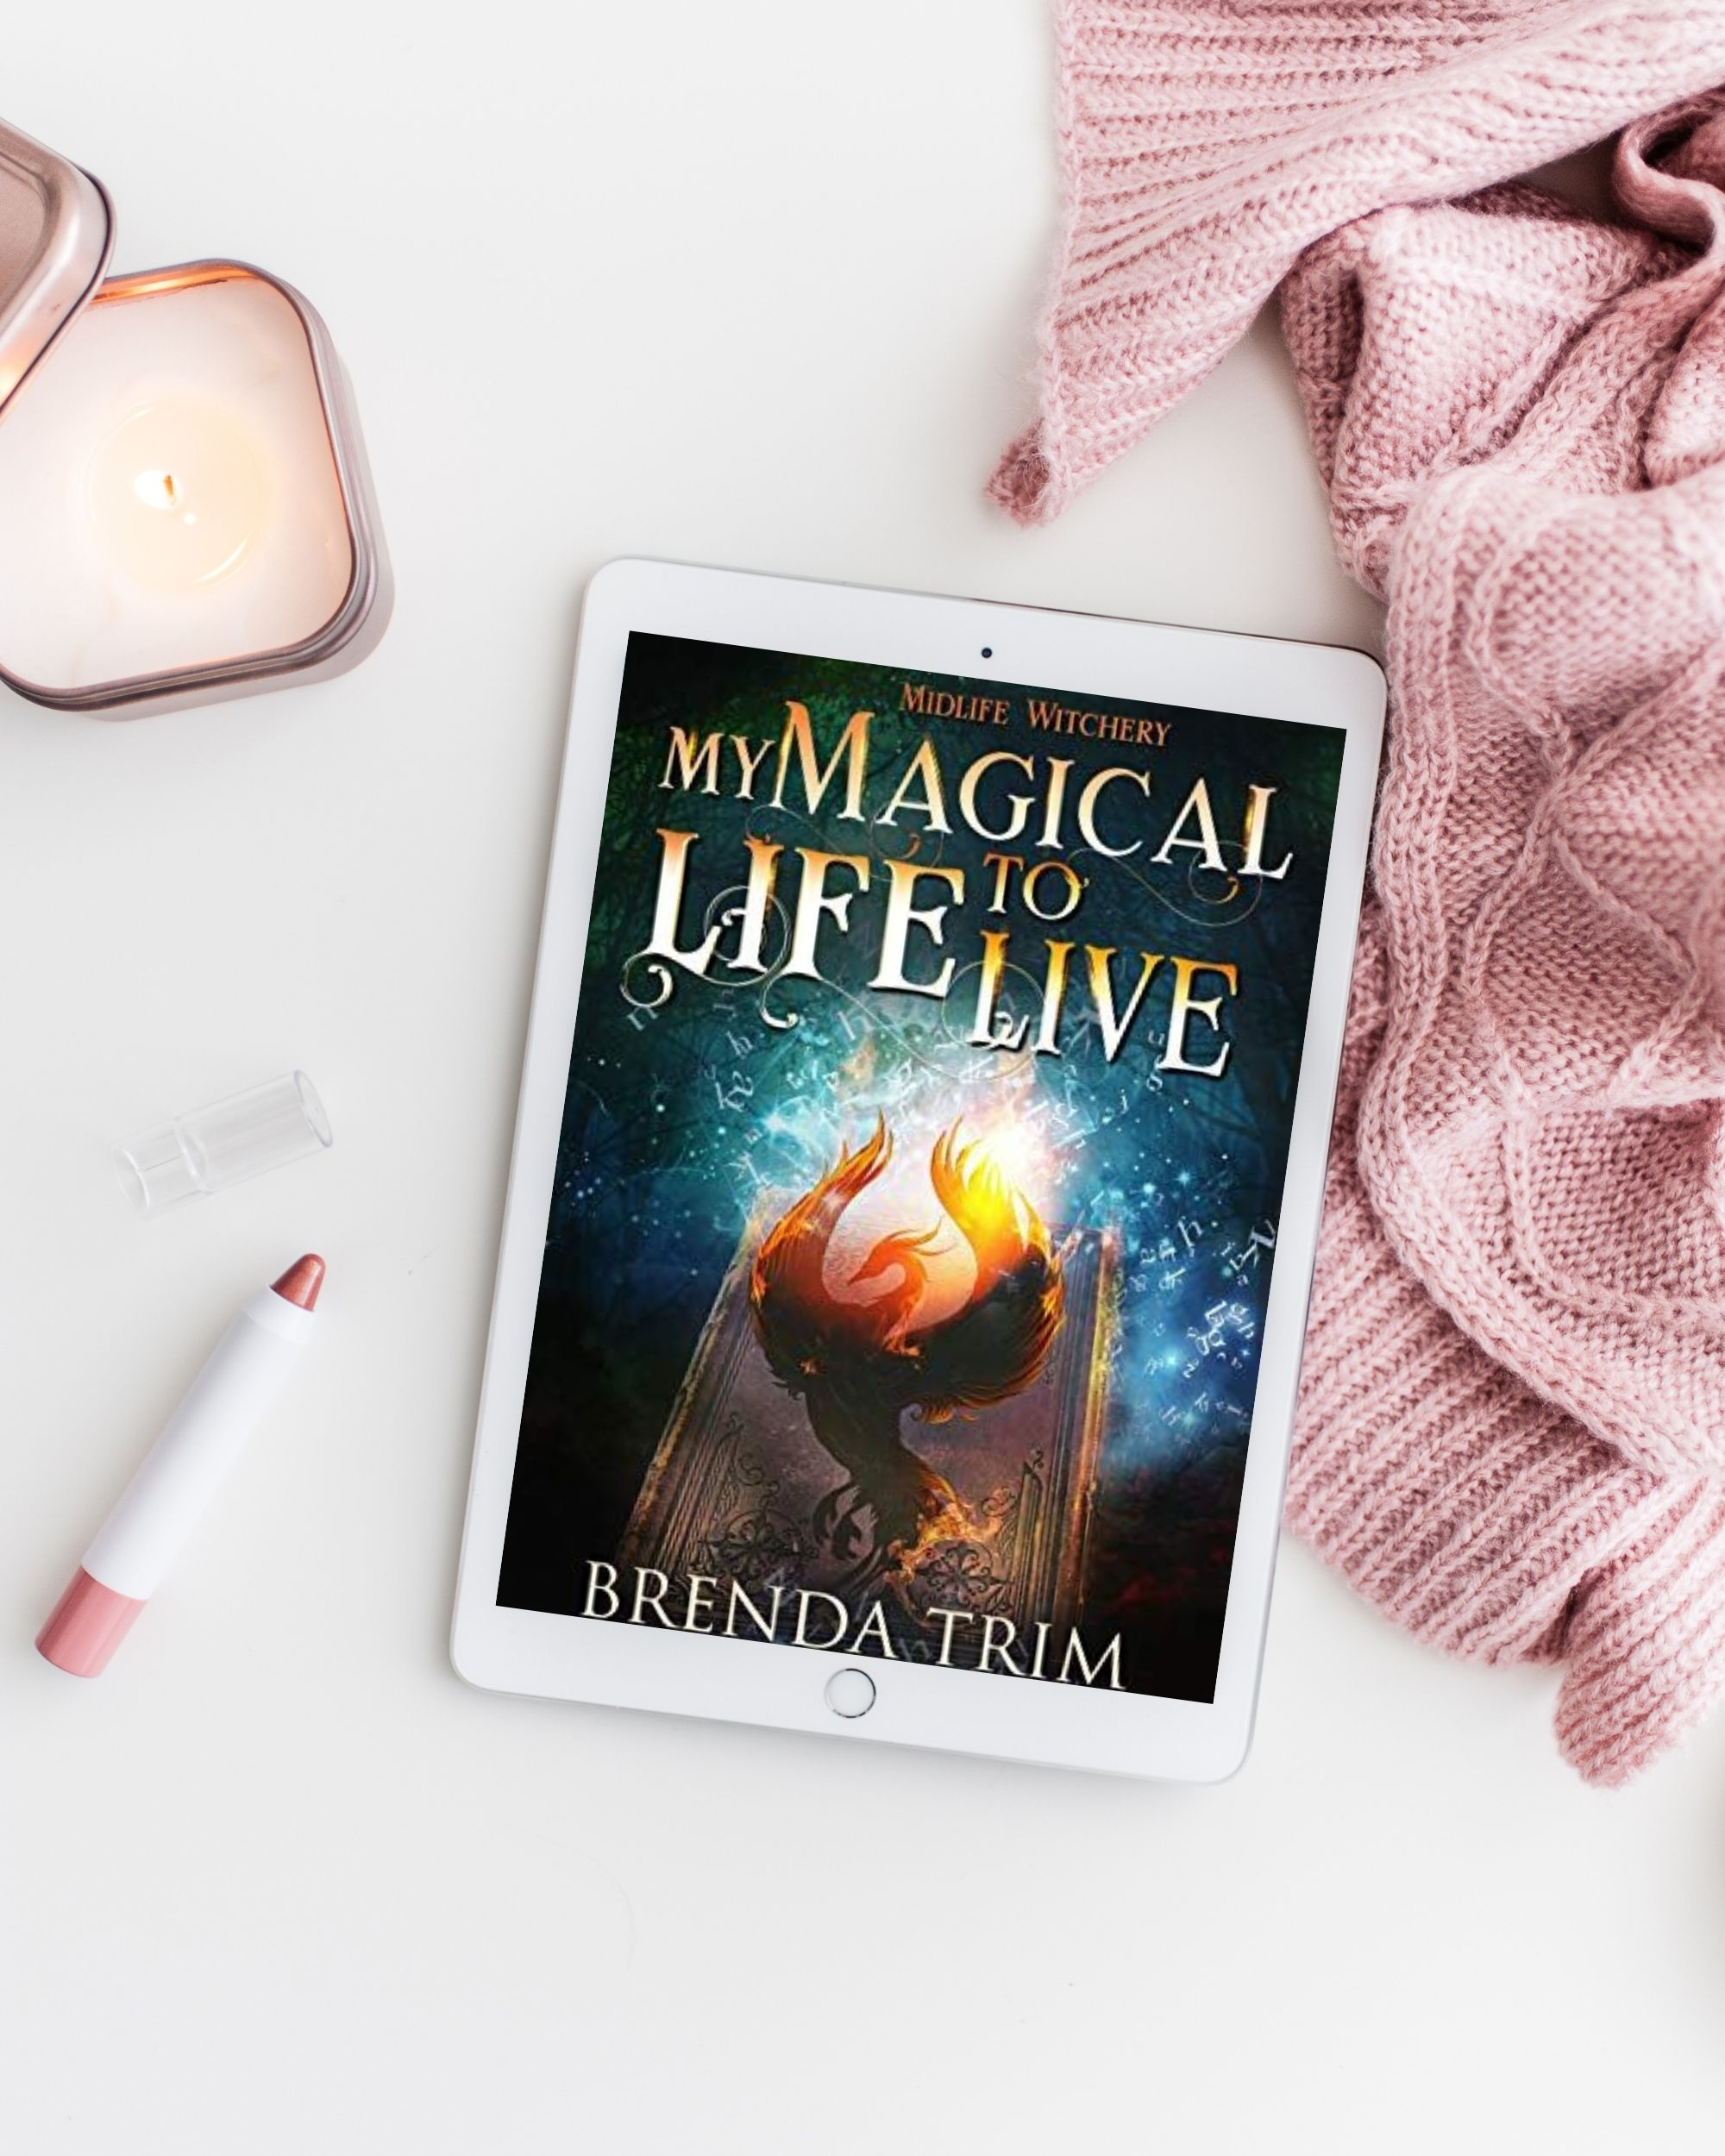 My Magical Life to Live by Brenda Trim | Book Review